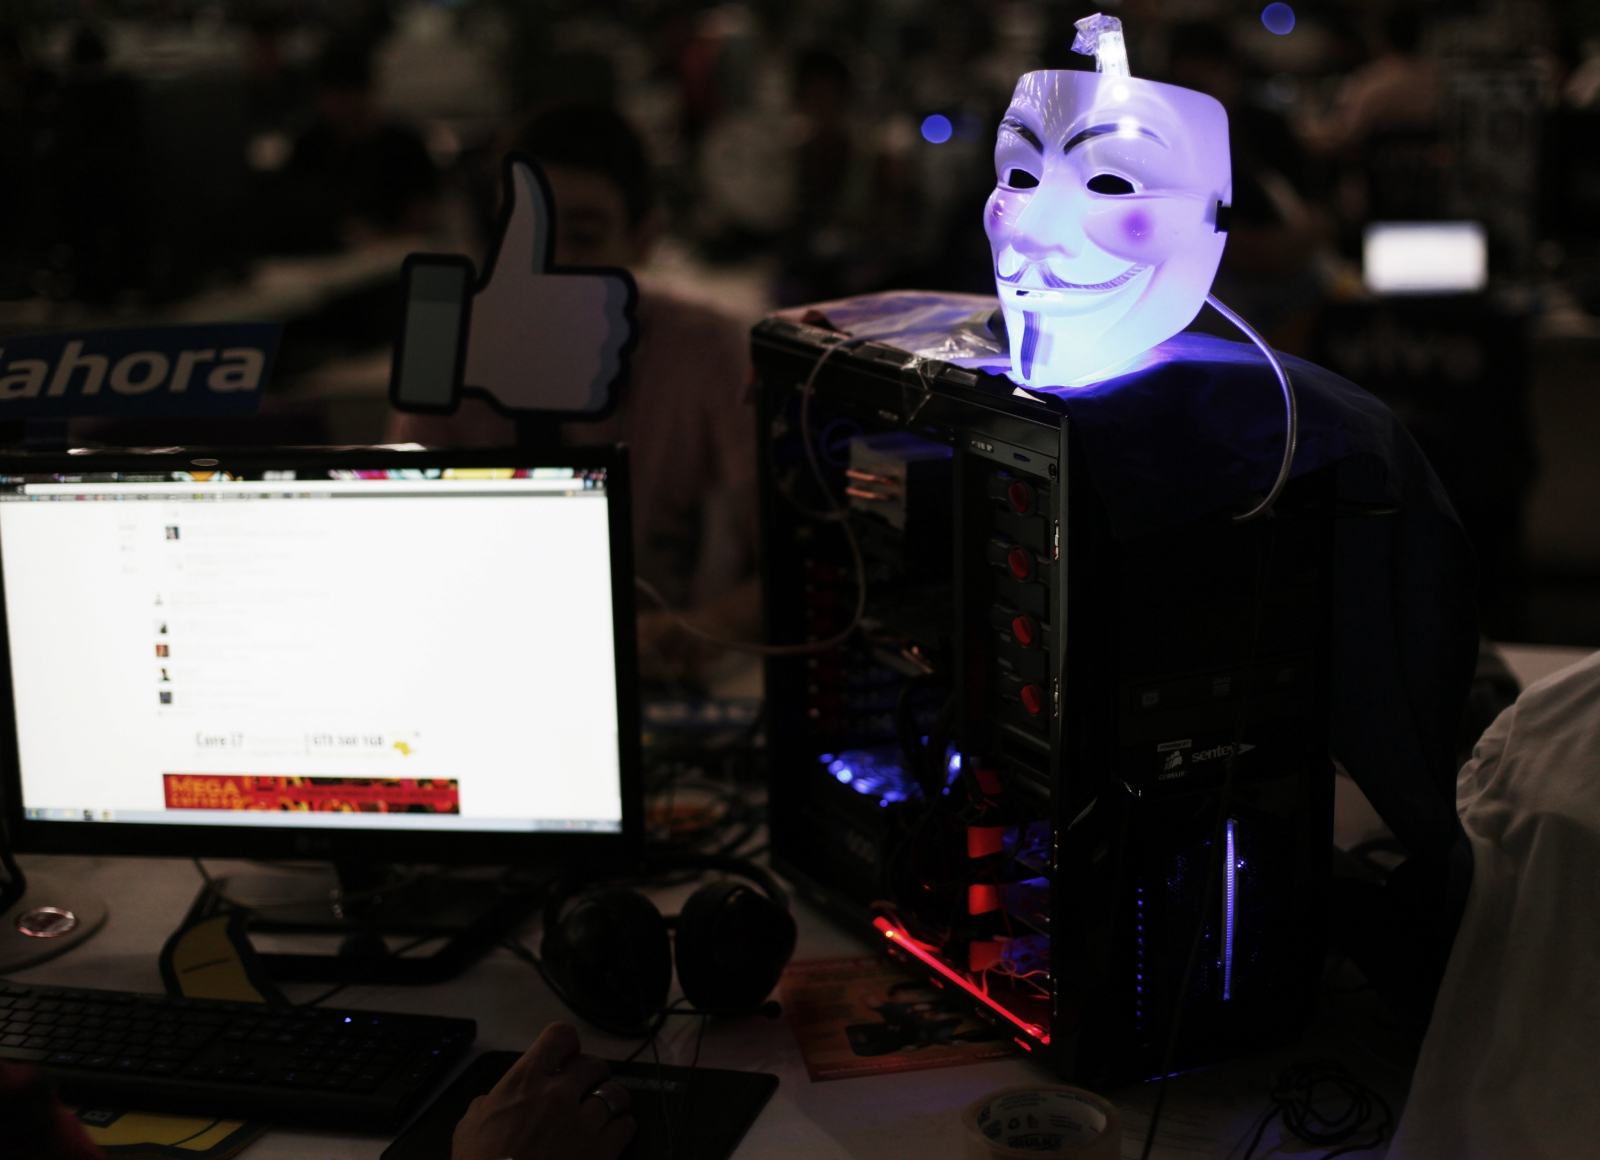 Anonymous hackers hit Thai government with DDoS attacks protesting restrictive Internet law